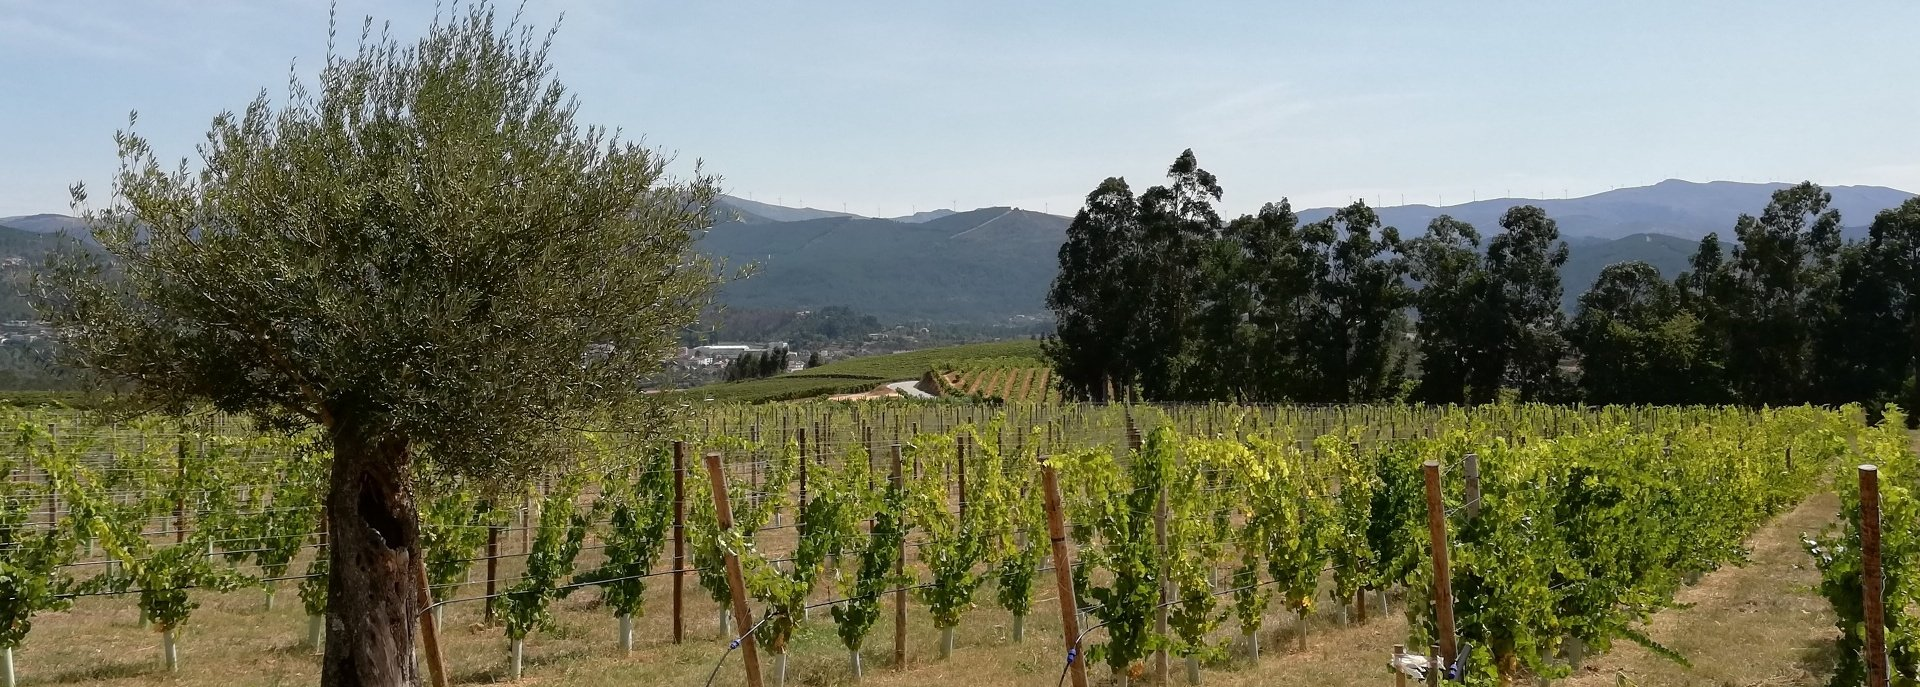 The nature and the vineyard that embraces the Quinta da Raza winery.